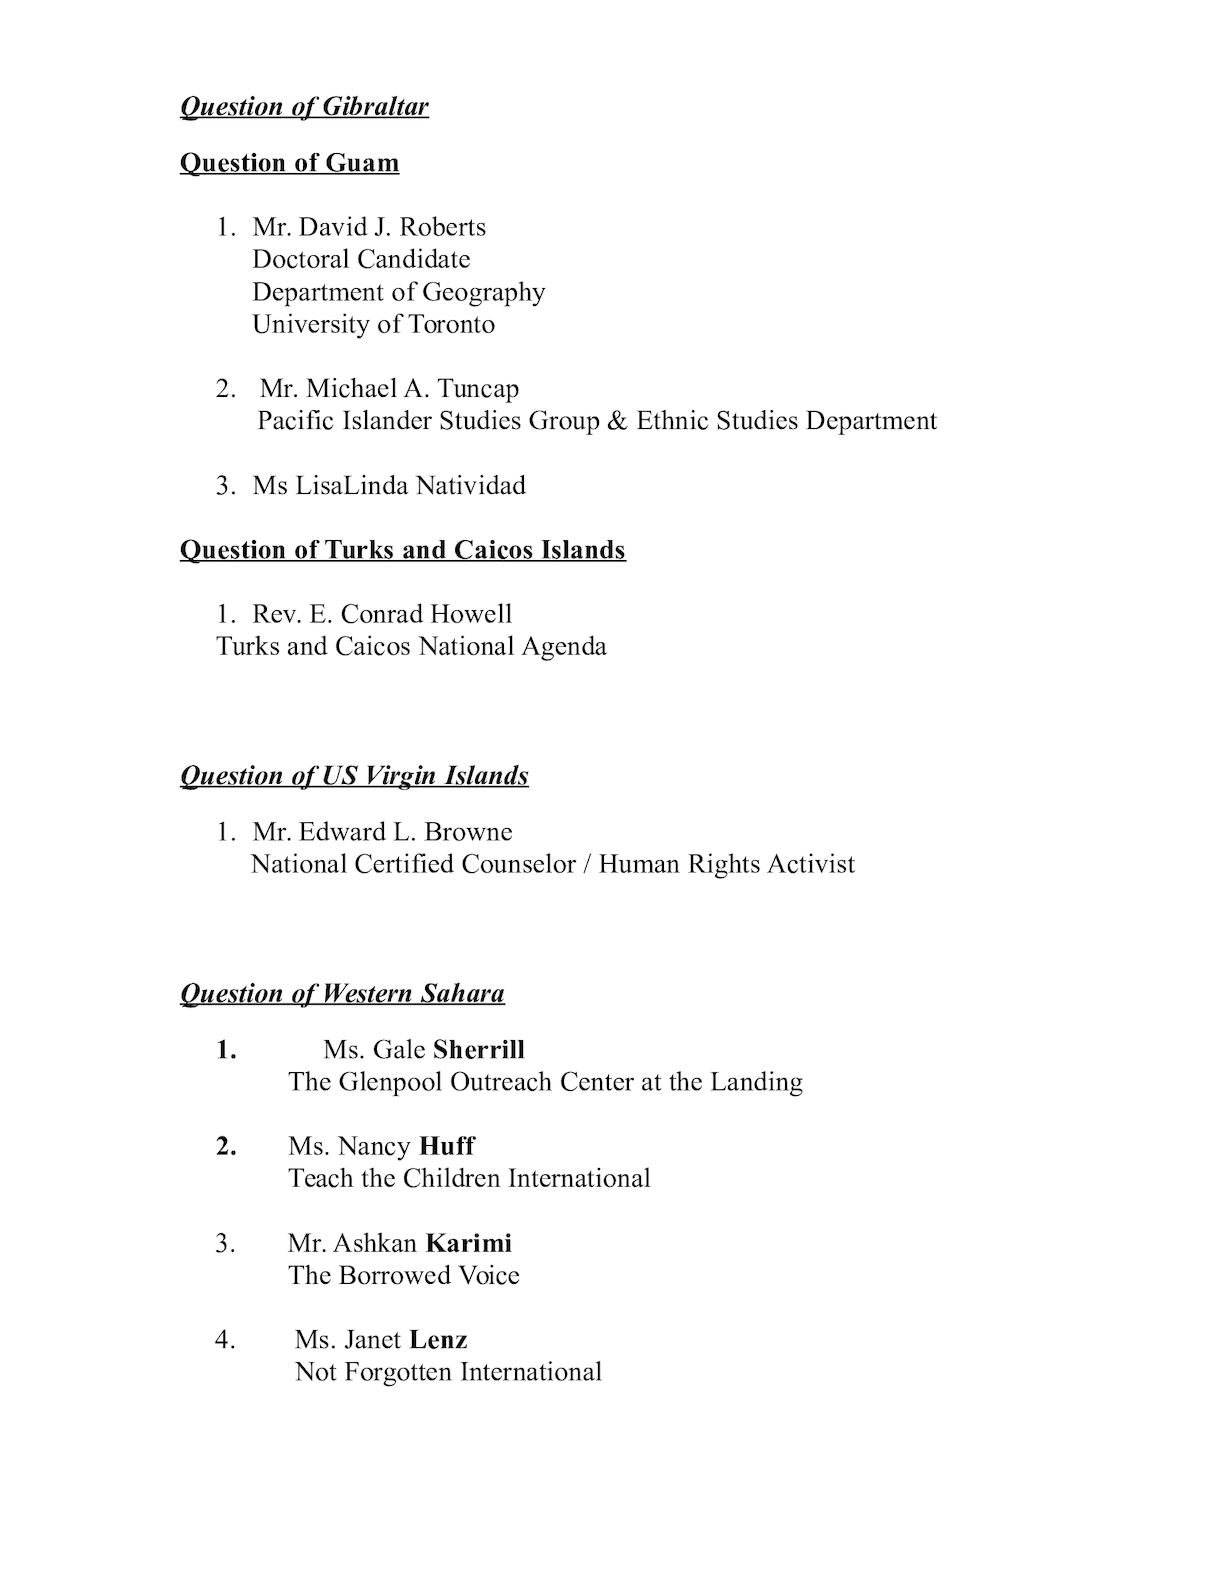 List Of Petitioners For Chair